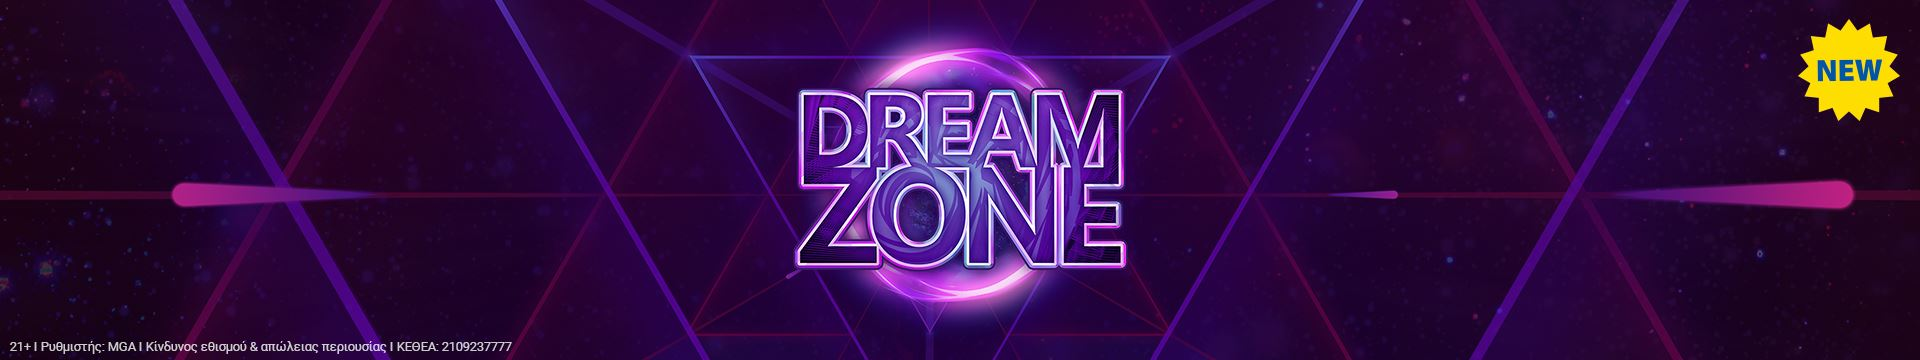 Dream_Zone